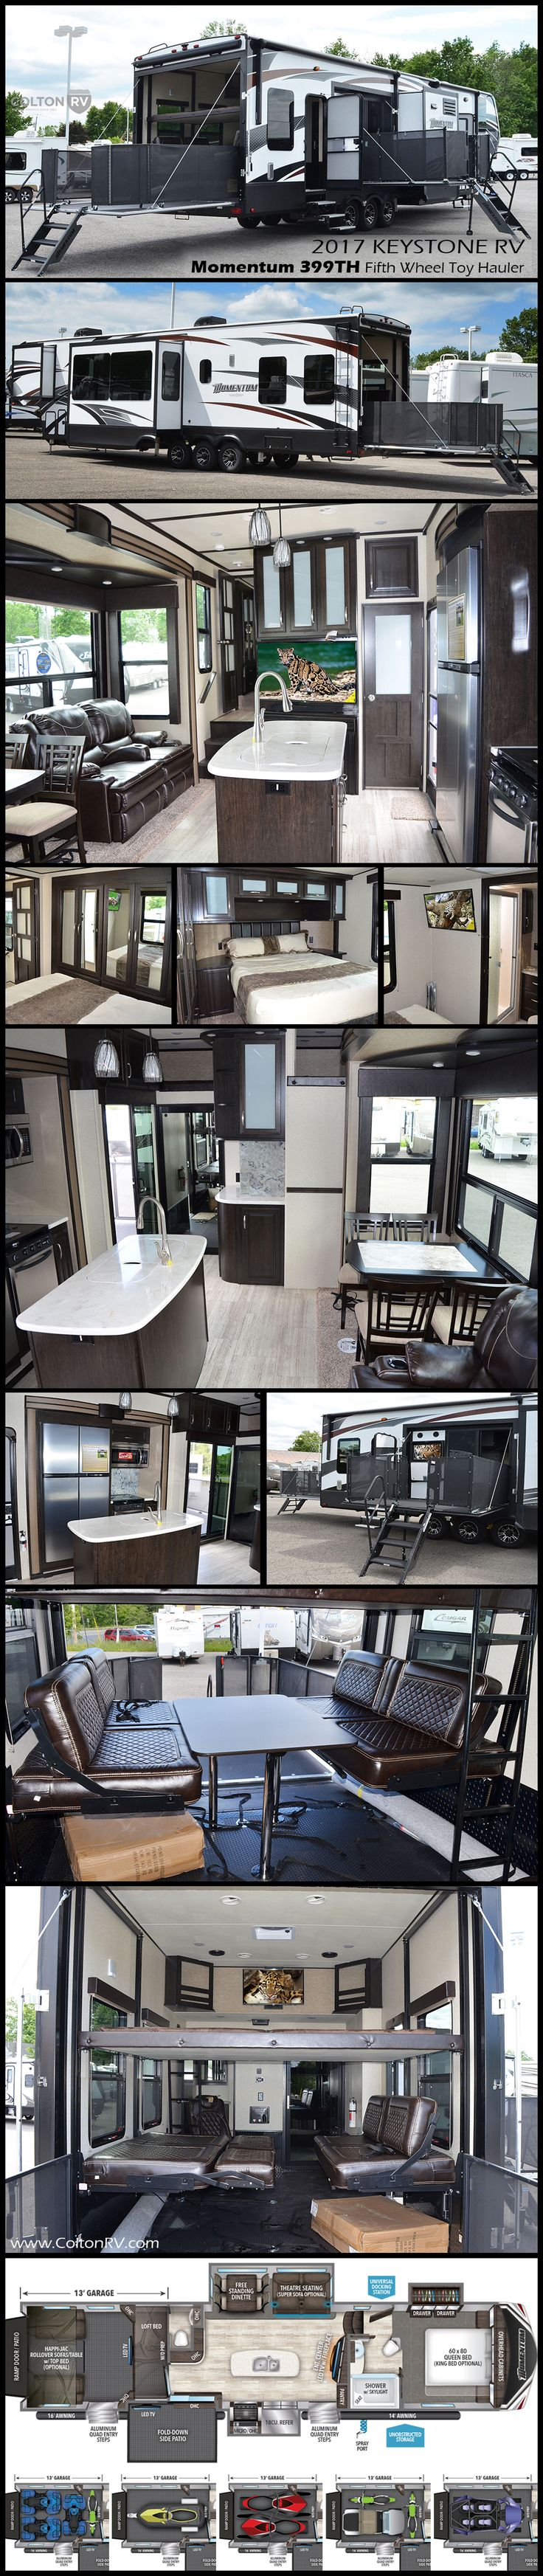 You can pack a whole lot of fun into this Momentum 399th Fifth Wheel Toy Hauler by Grand Design! There is so much sleeping space for a few extra buddies to tag along, one and a half baths, a fireplace fold down side patio, plus so much more. With 13' of toy parking space in the garbage, you can take it all. The bath includes a large shower with skylight, linen cabinet, toilet and vanity with vessel bowl sink.